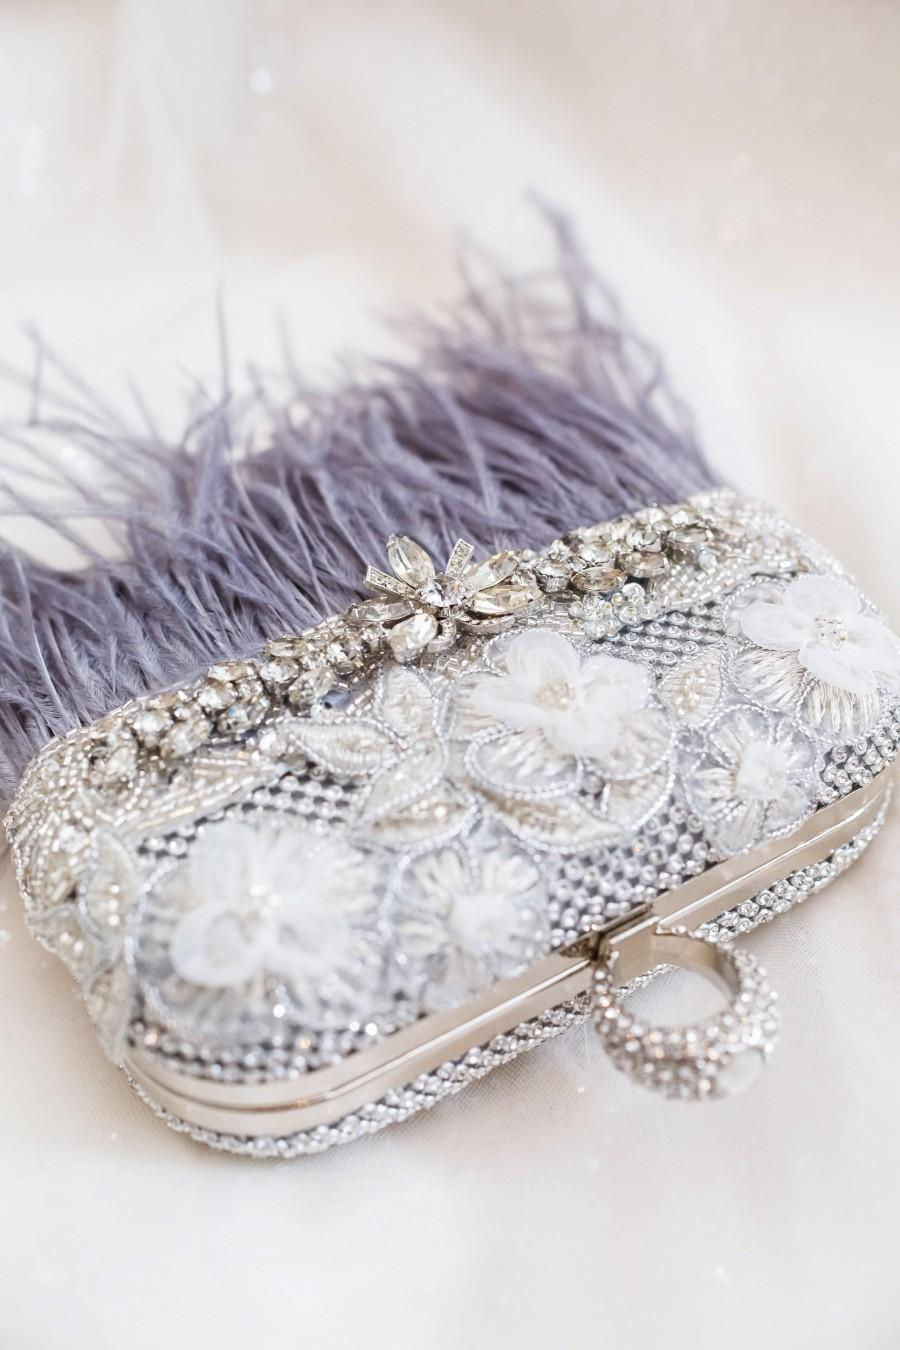 Wedding - Gray Feather Bridal Clutch,  Rhinestone Wedding Purse, Bridal Clutch, Bridesmaids gift, Evening Clutch Bag, Wedding Clutch , Feather Clutch